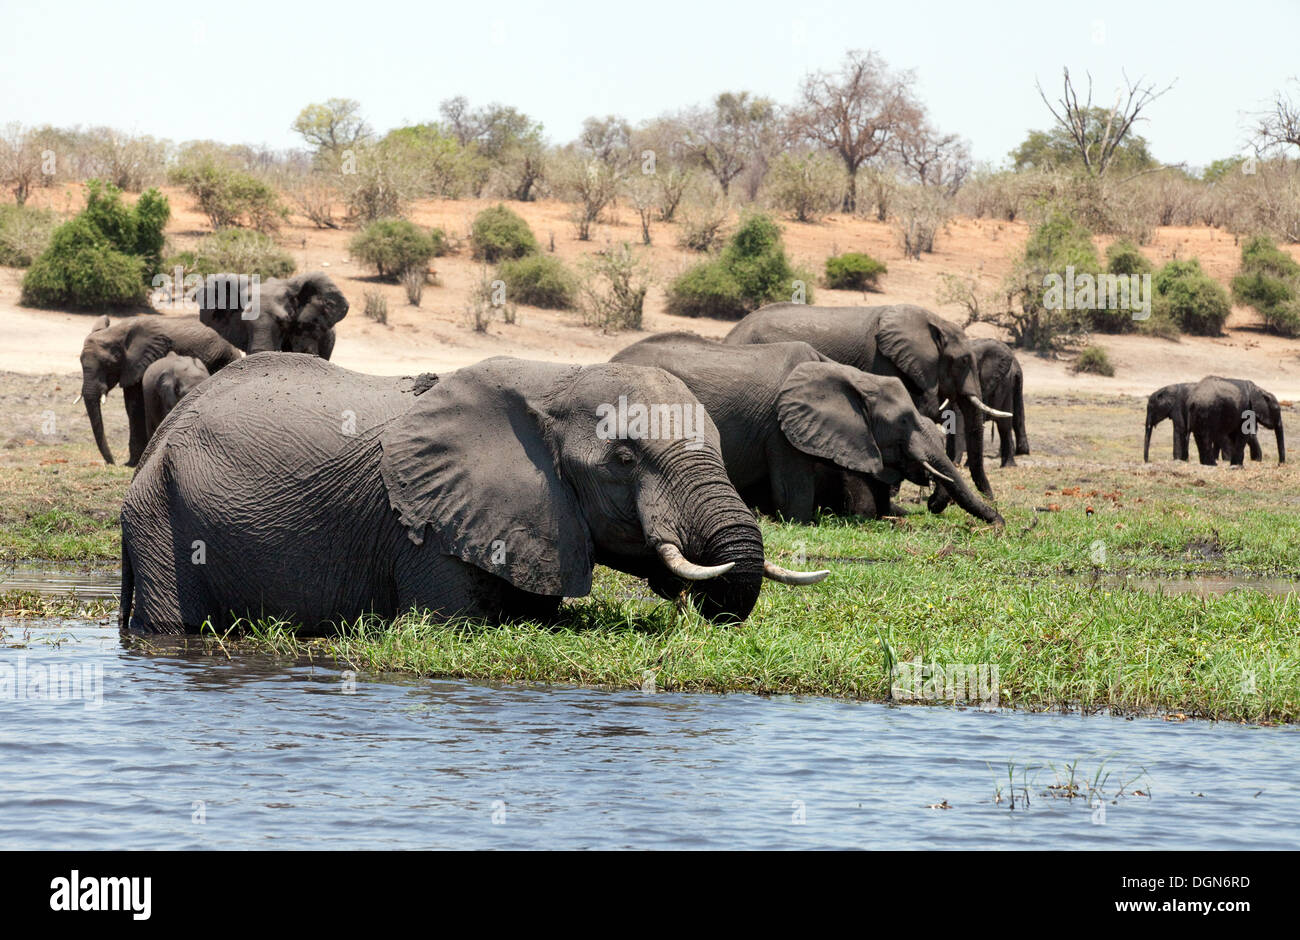 A herd of african elephants ( Loxodonta Africana ) feeding on the banks of the Chobe river, Chobe National Park, Botswana Africa - Stock Image